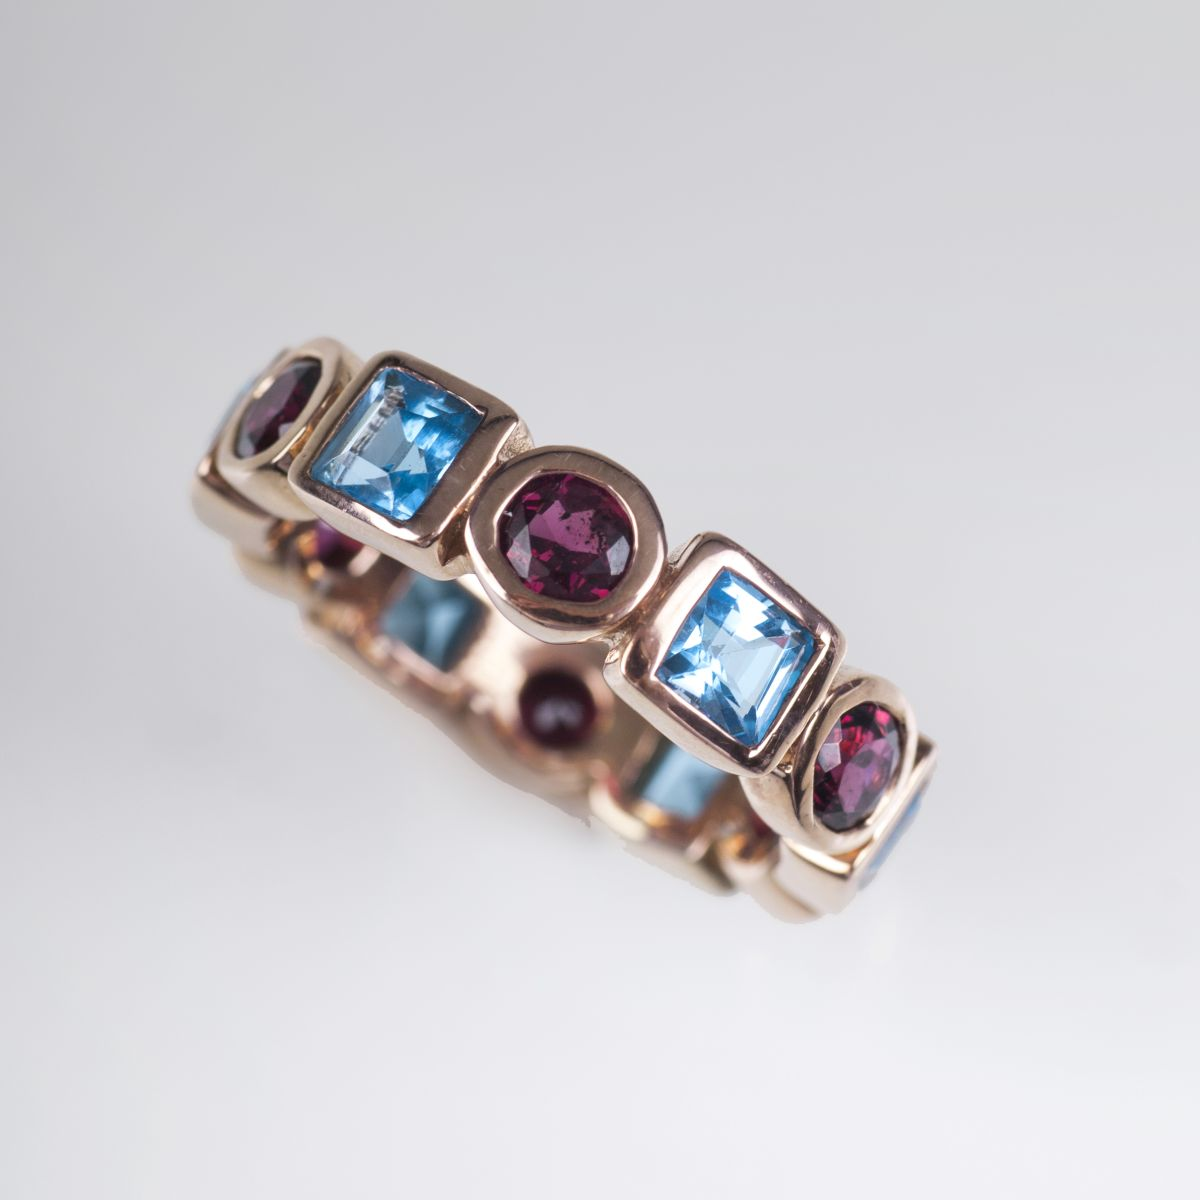 A memory ring with blue topaz and garnet